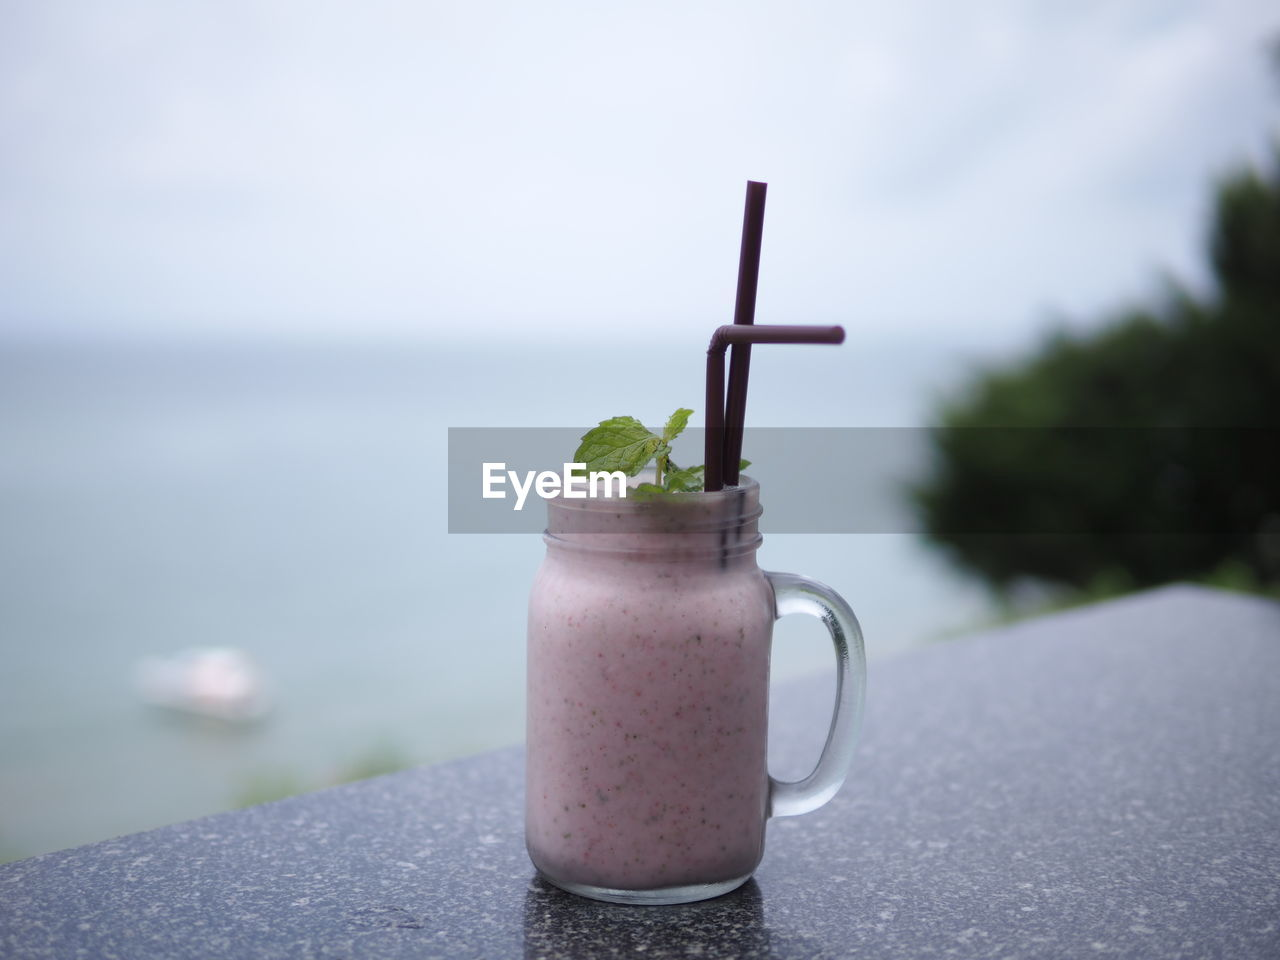 drink, food and drink, refreshment, focus on foreground, straw, freshness, table, drinking straw, food, no people, close-up, day, cup, nature, household equipment, glass, still life, water, drinking glass, outdoors